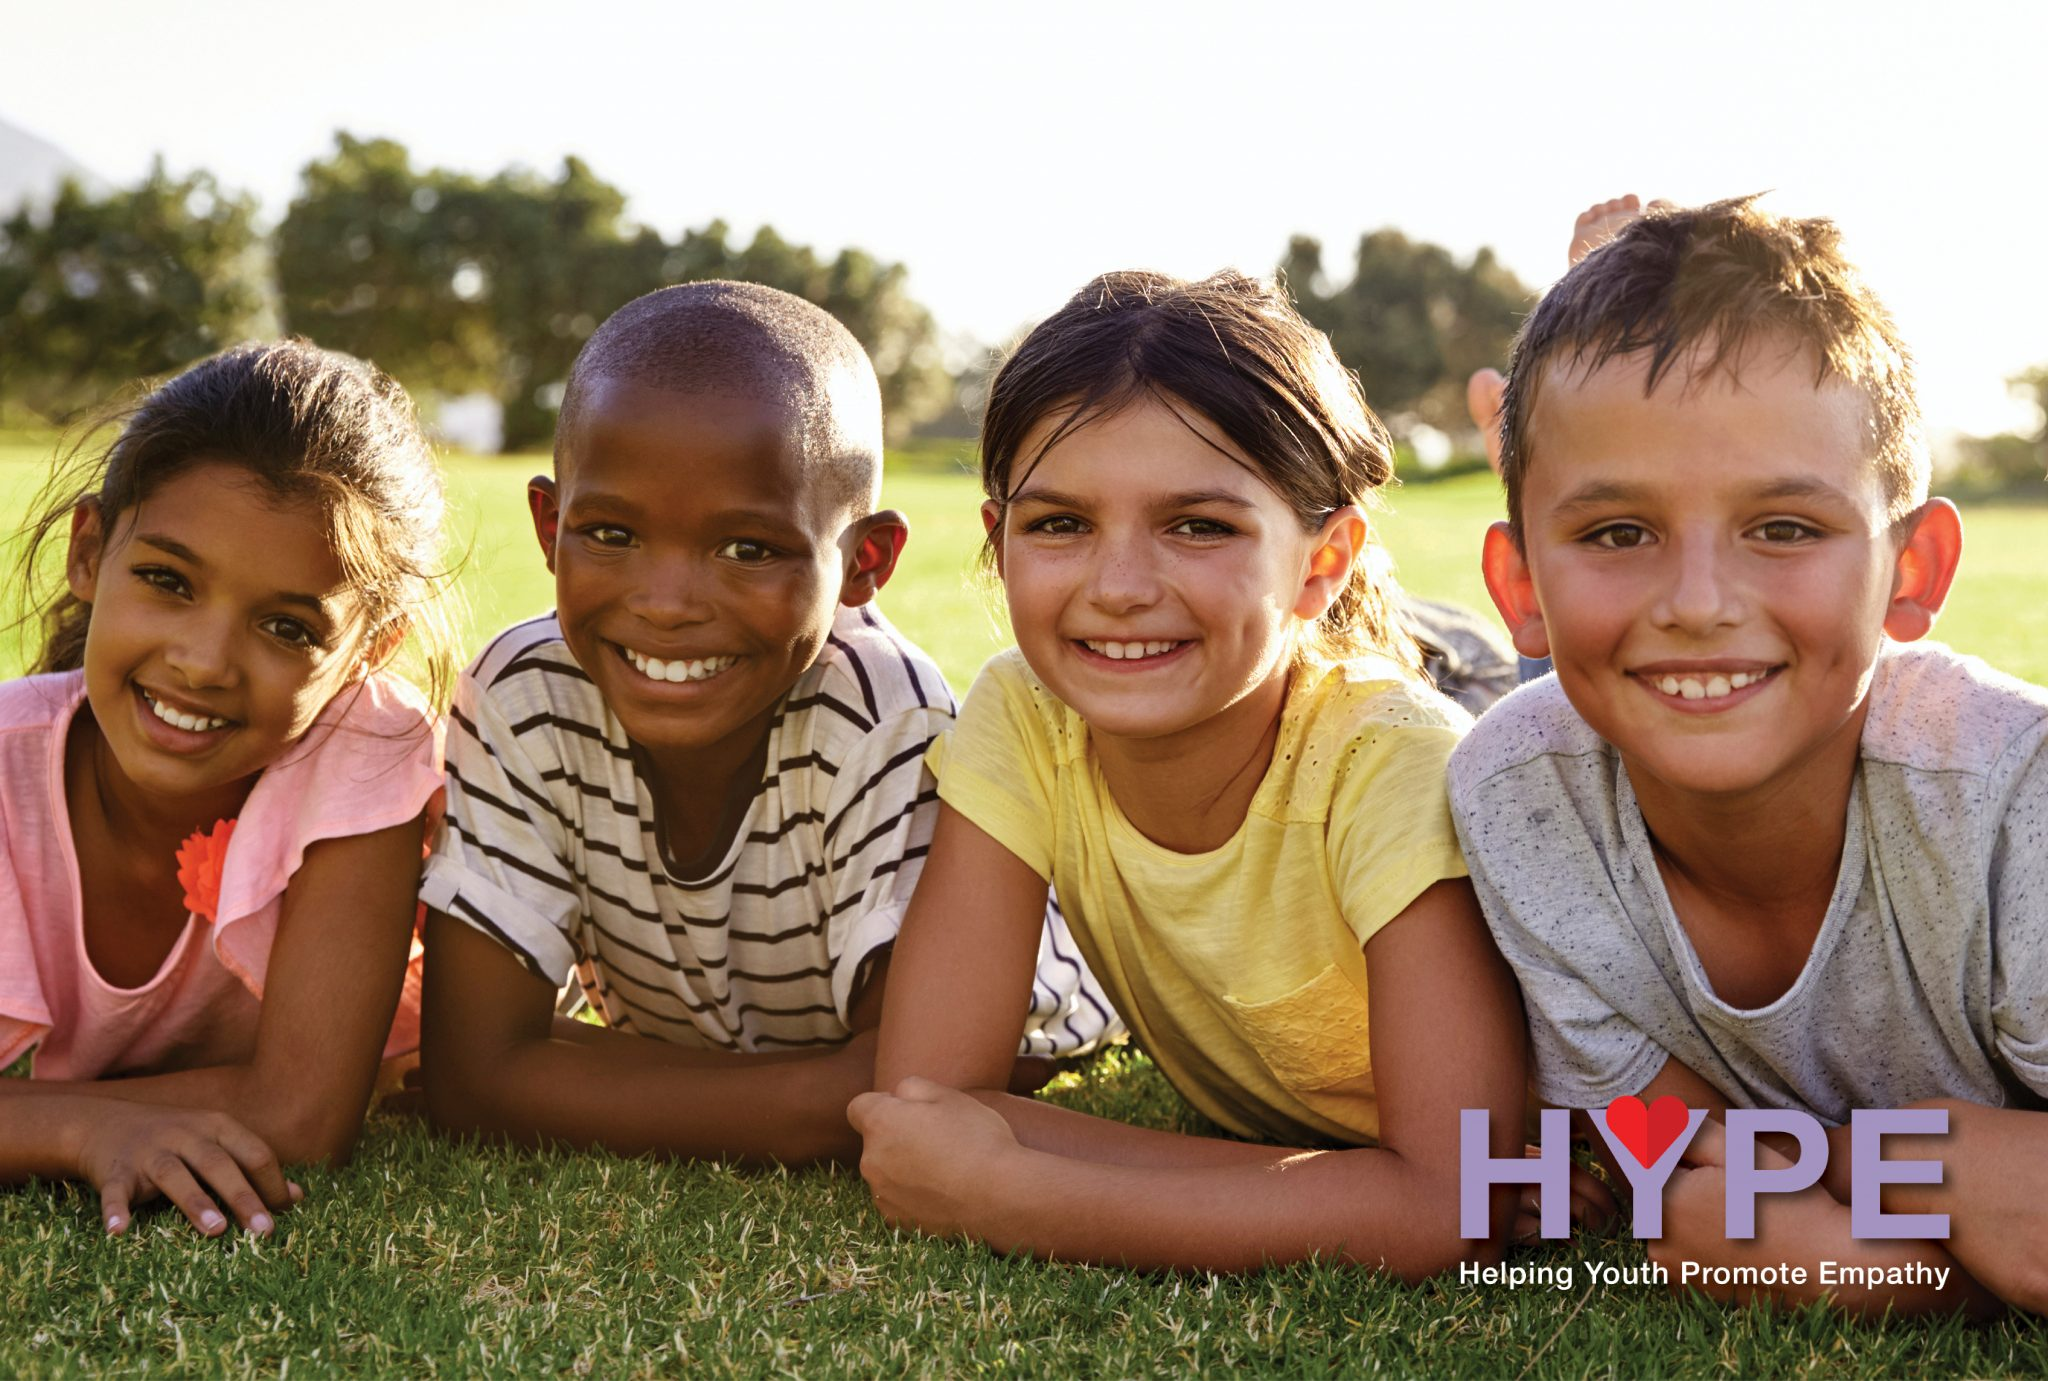 Four elementary school kids from diverse backgounds lay on the grass and smile at the camera.